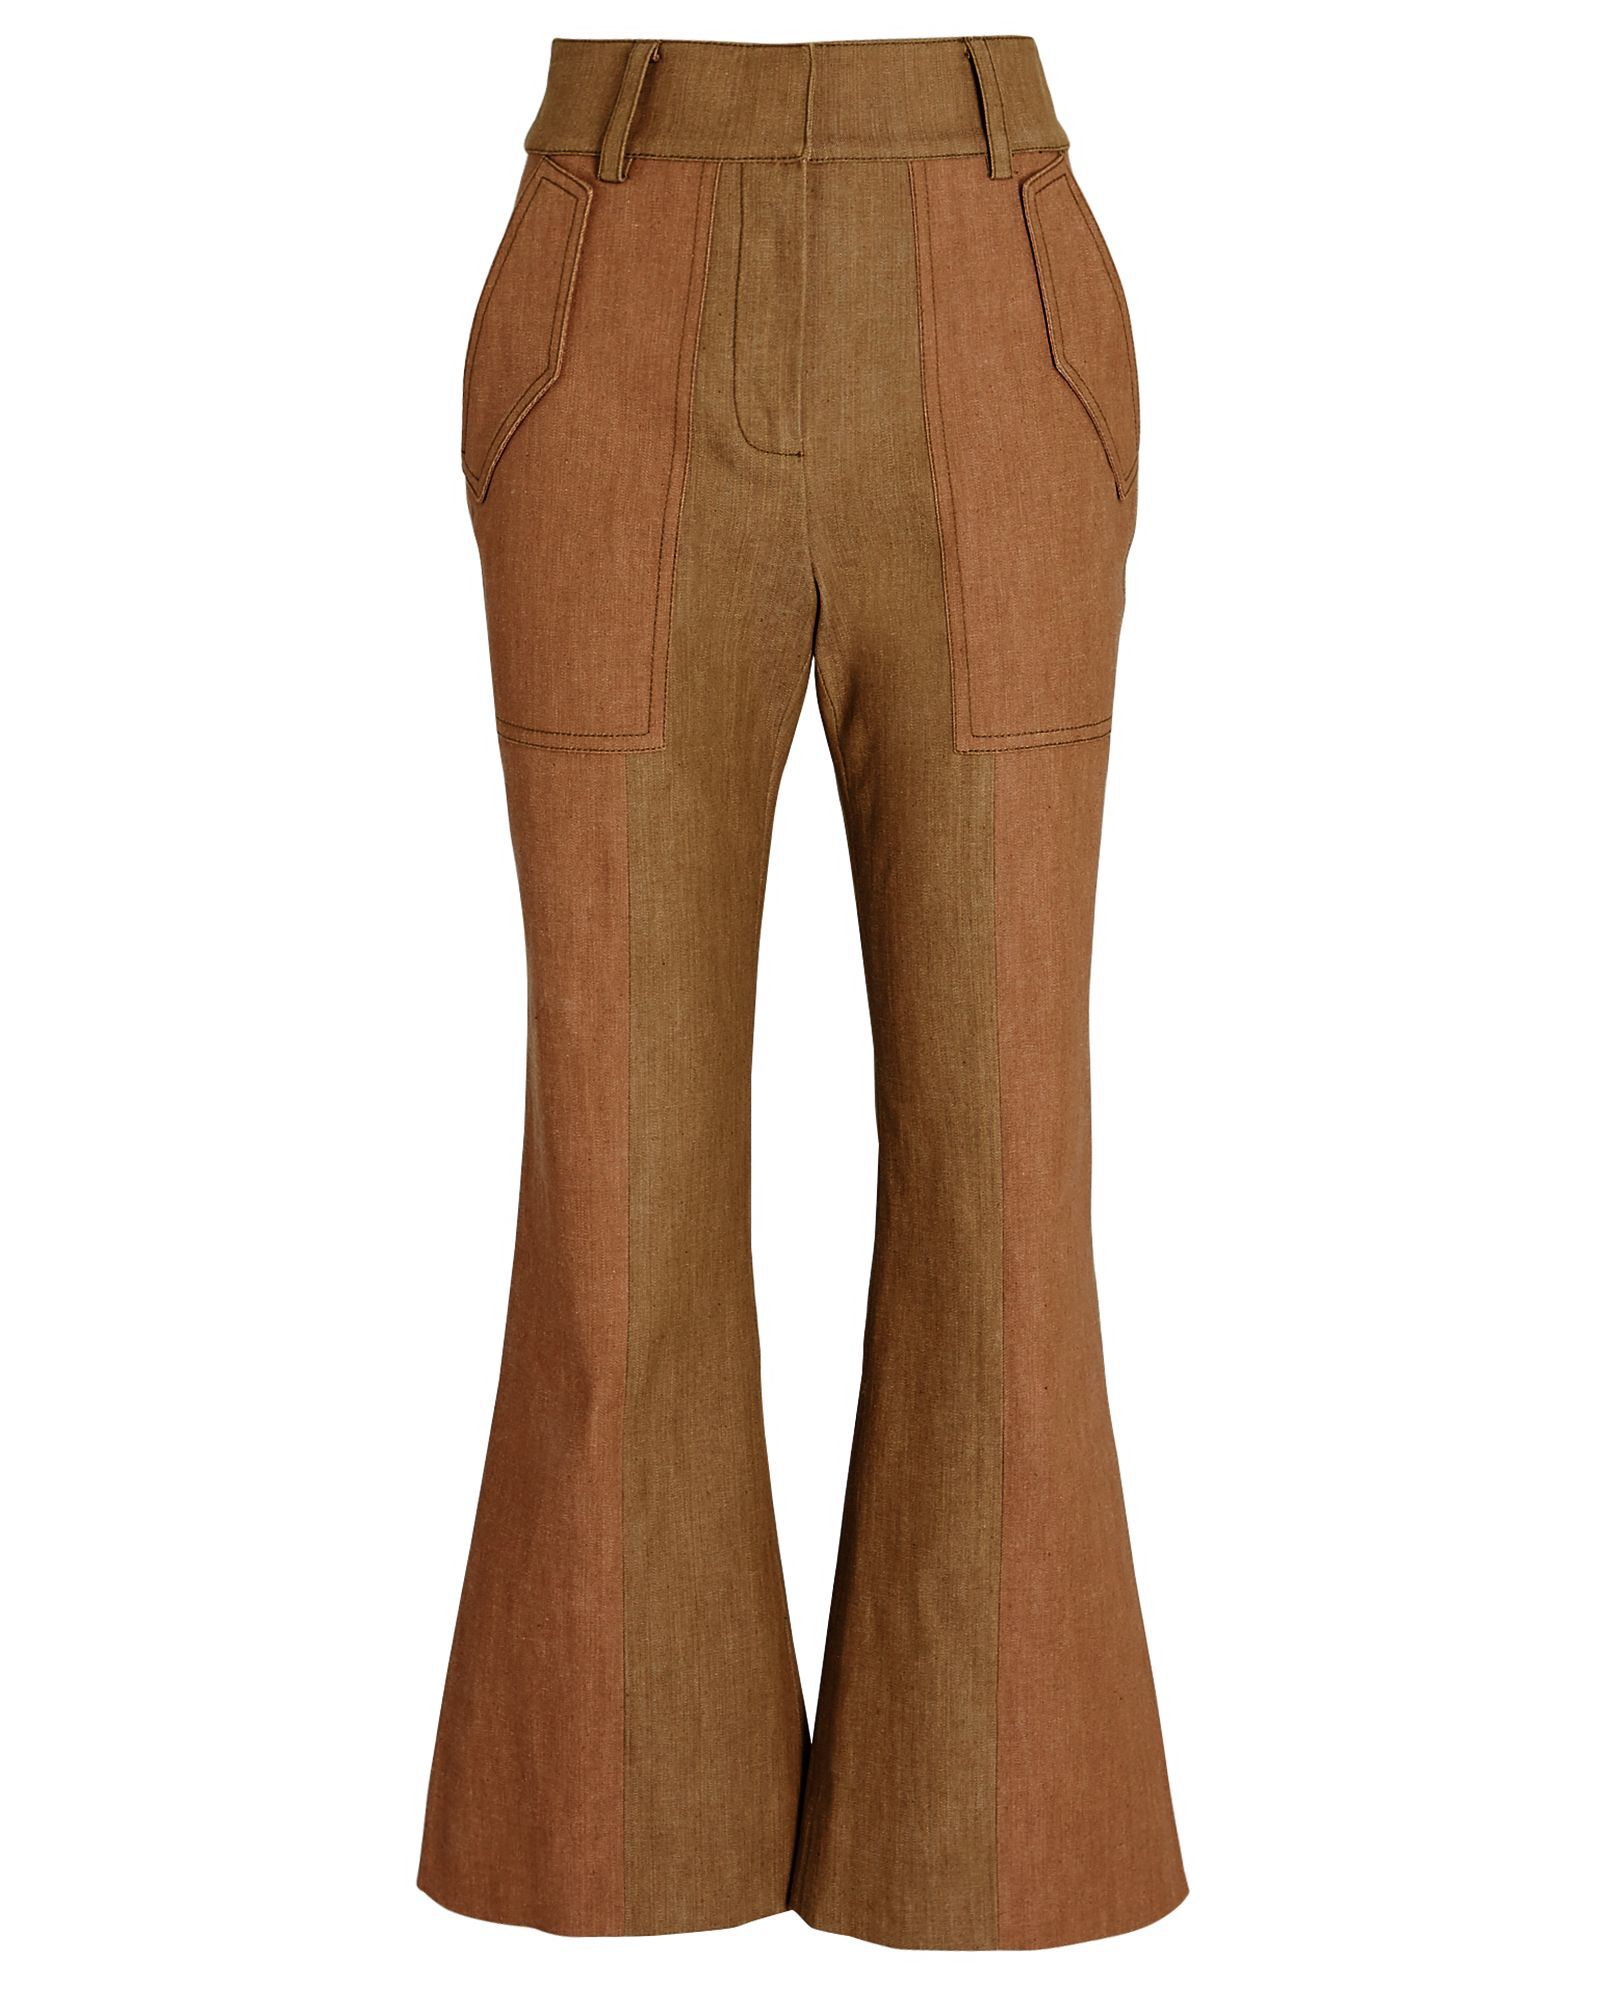 Nellie Flared High-Rise Pants, BEIGE/BROWN, hi-res